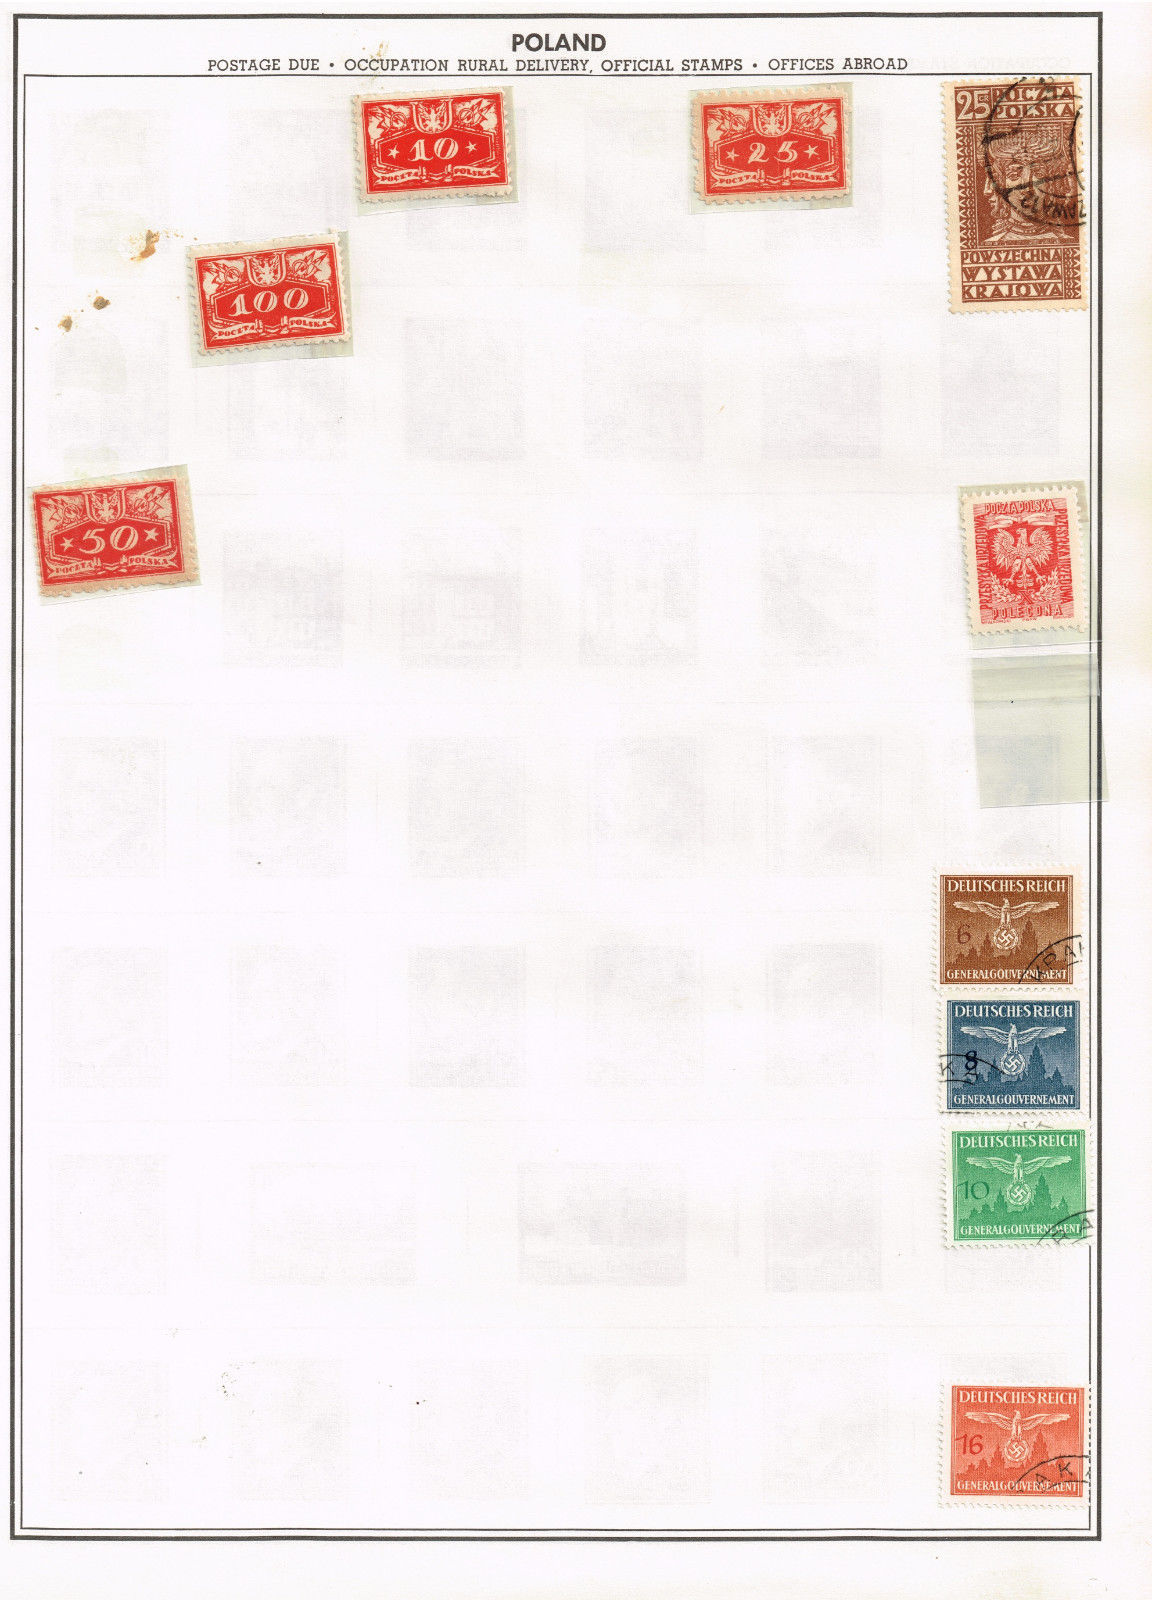 38 Poland   stamps - airmail / semi-postal / government